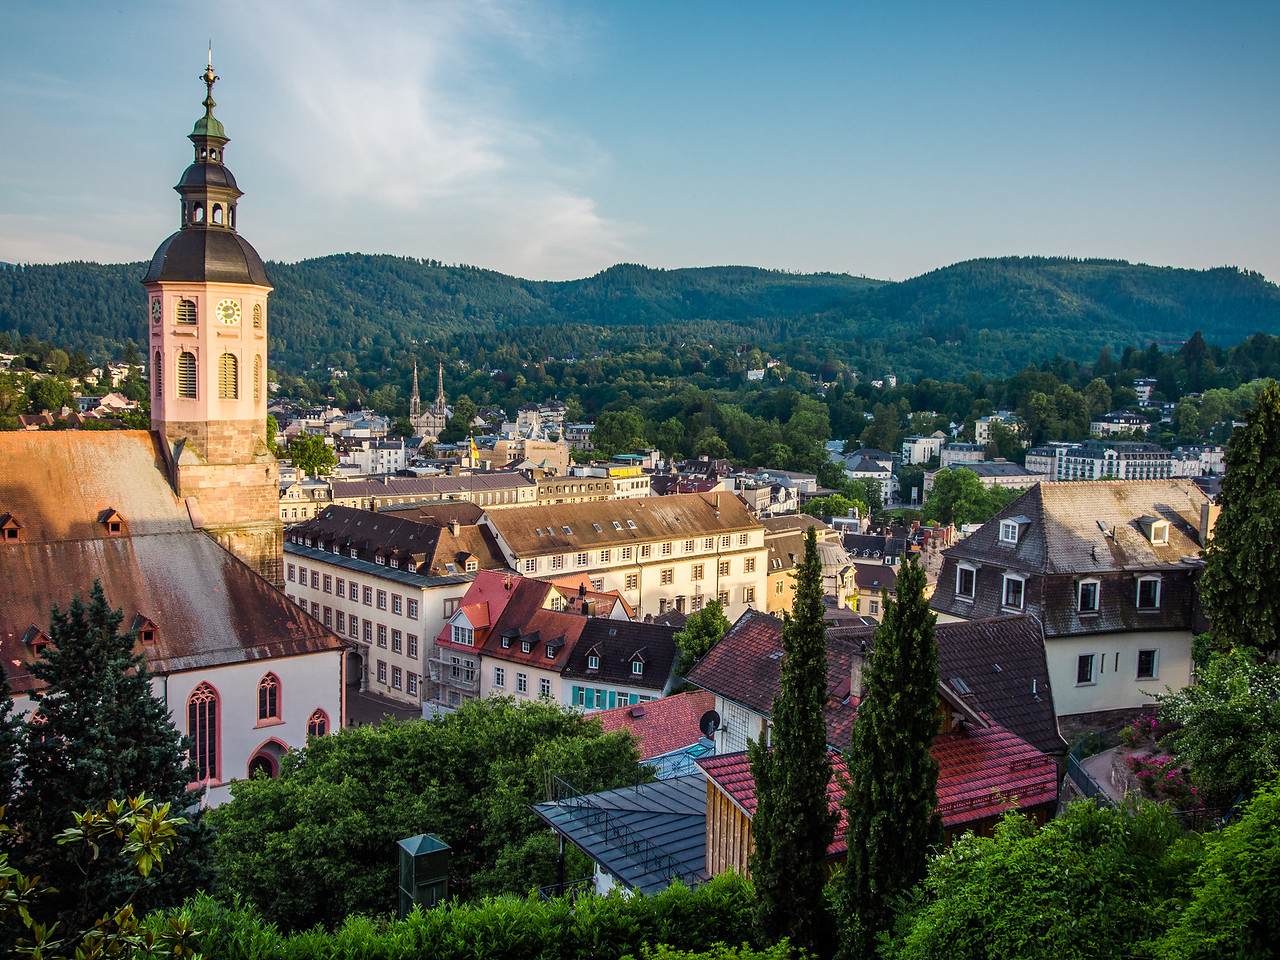 Overlooking Baden Baden, Germany